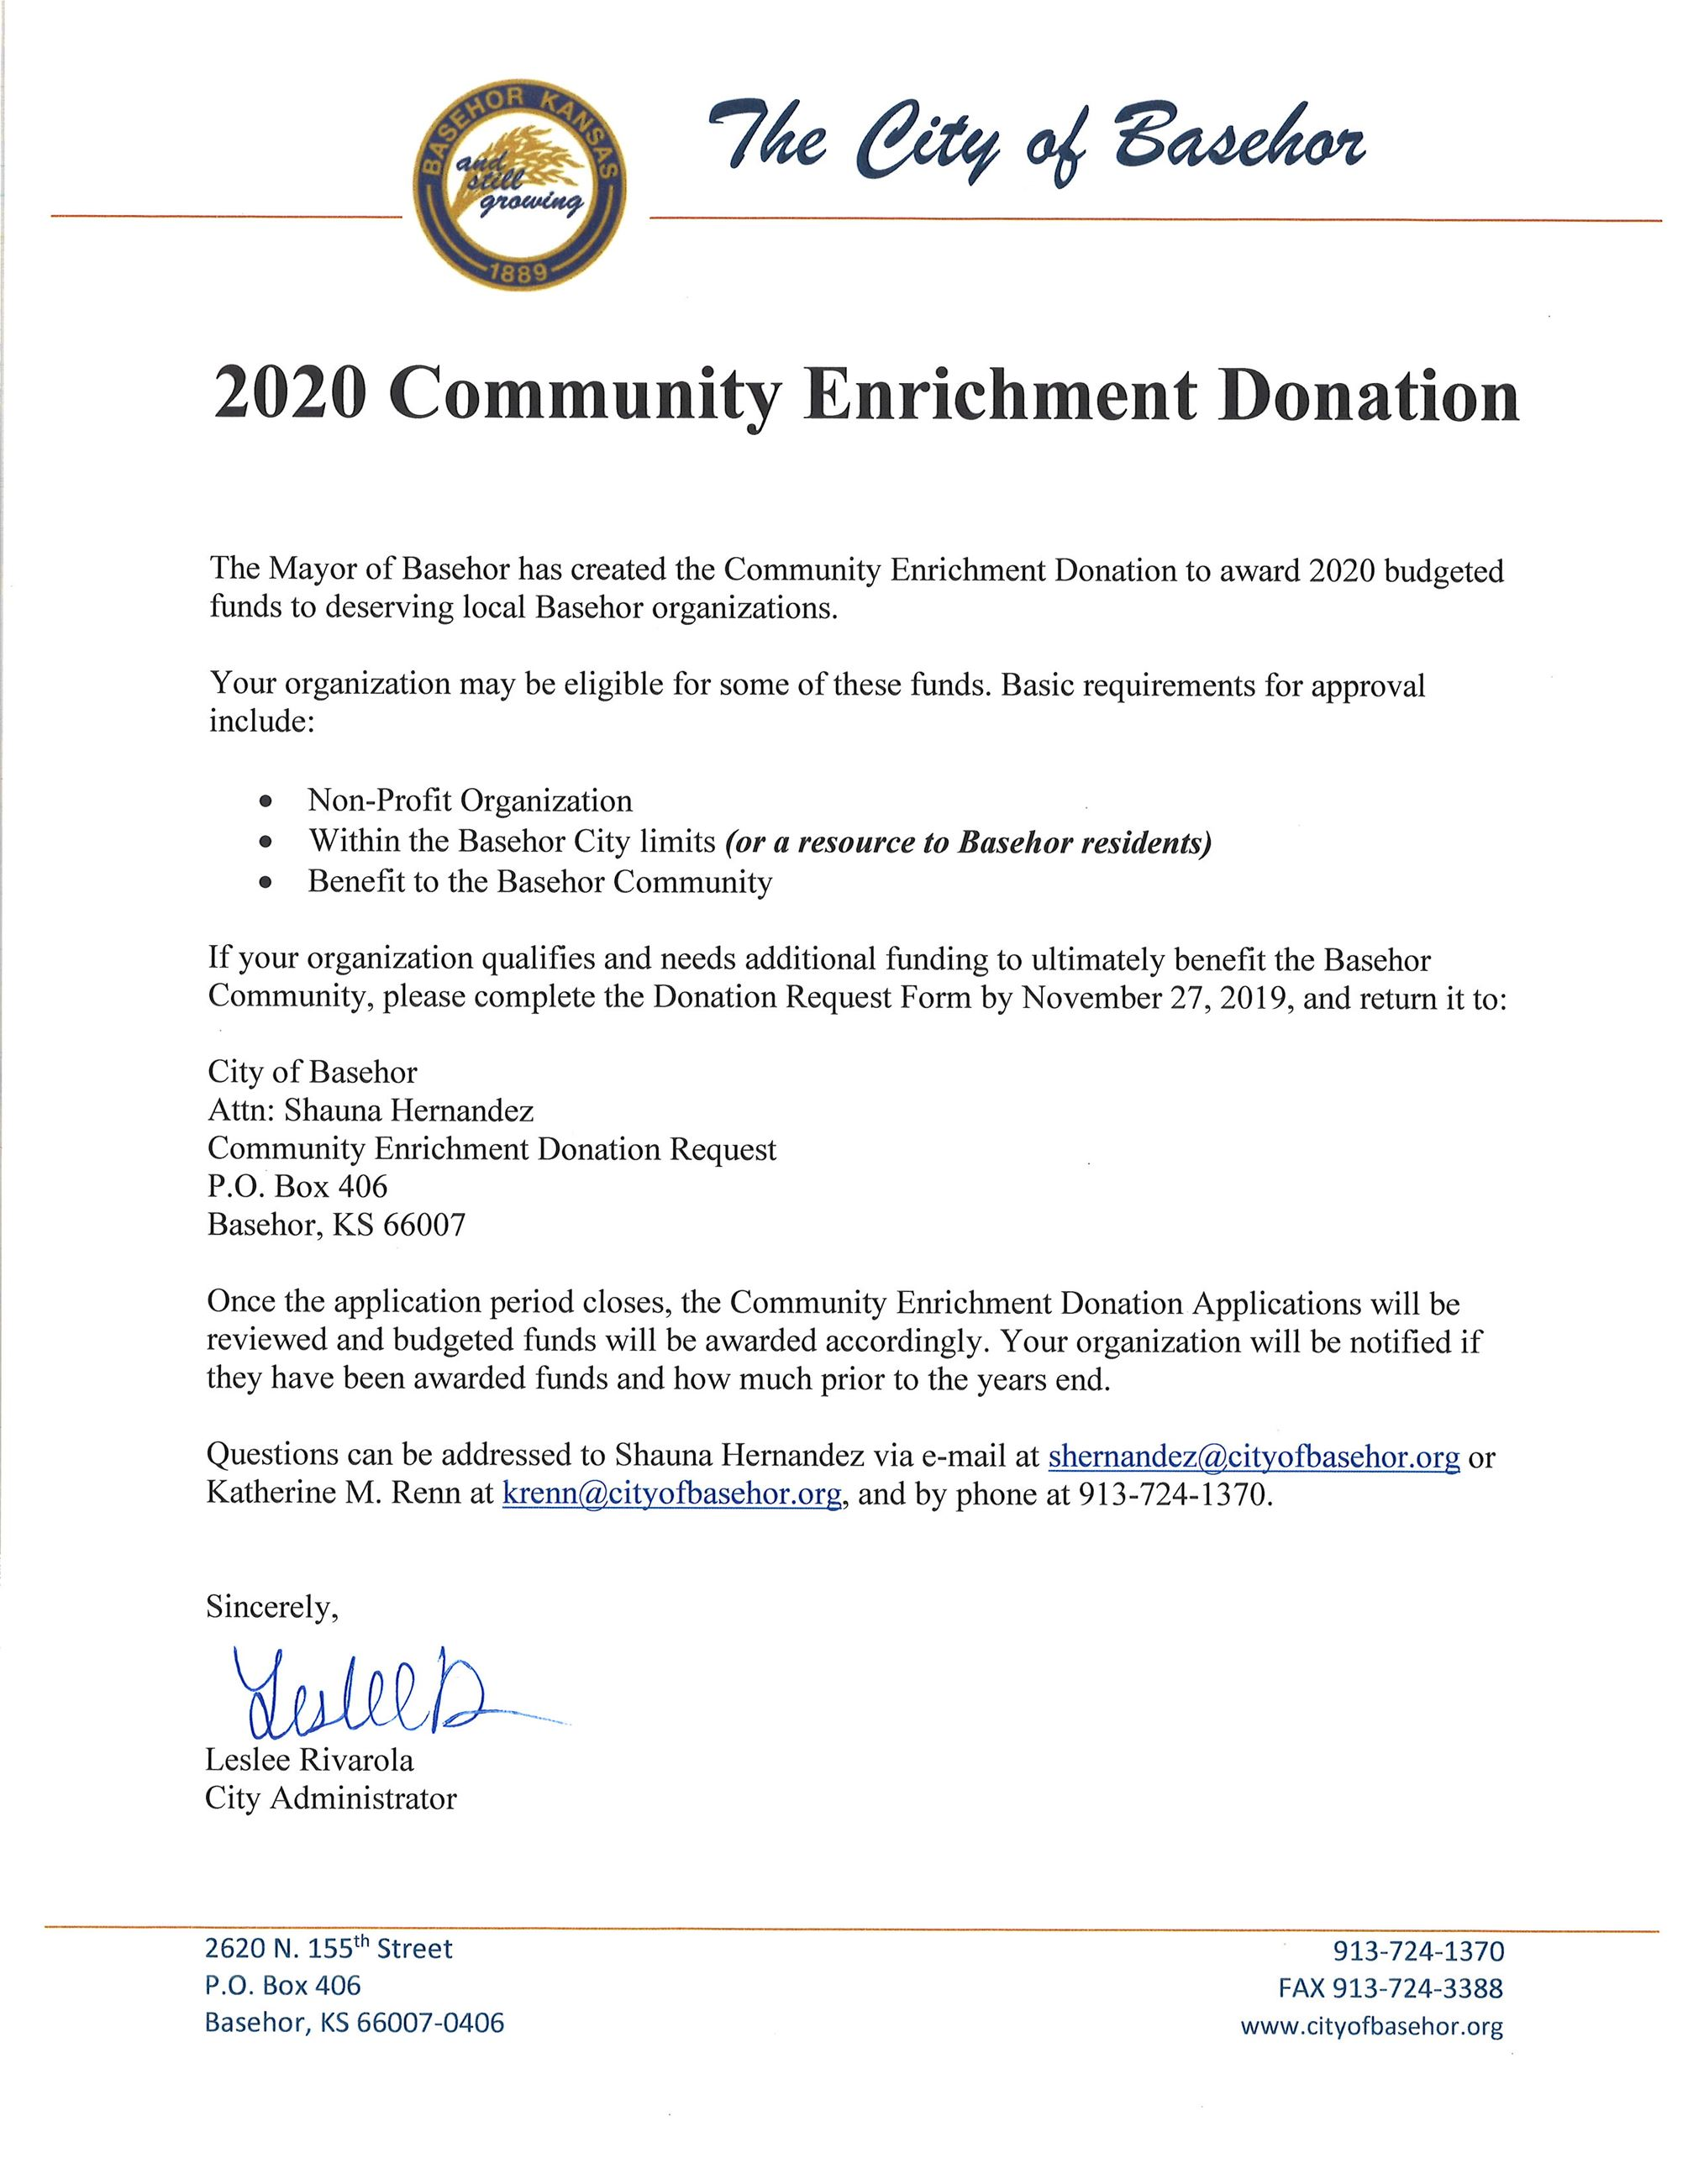 2020 Community Enrichment Donation Announcemt